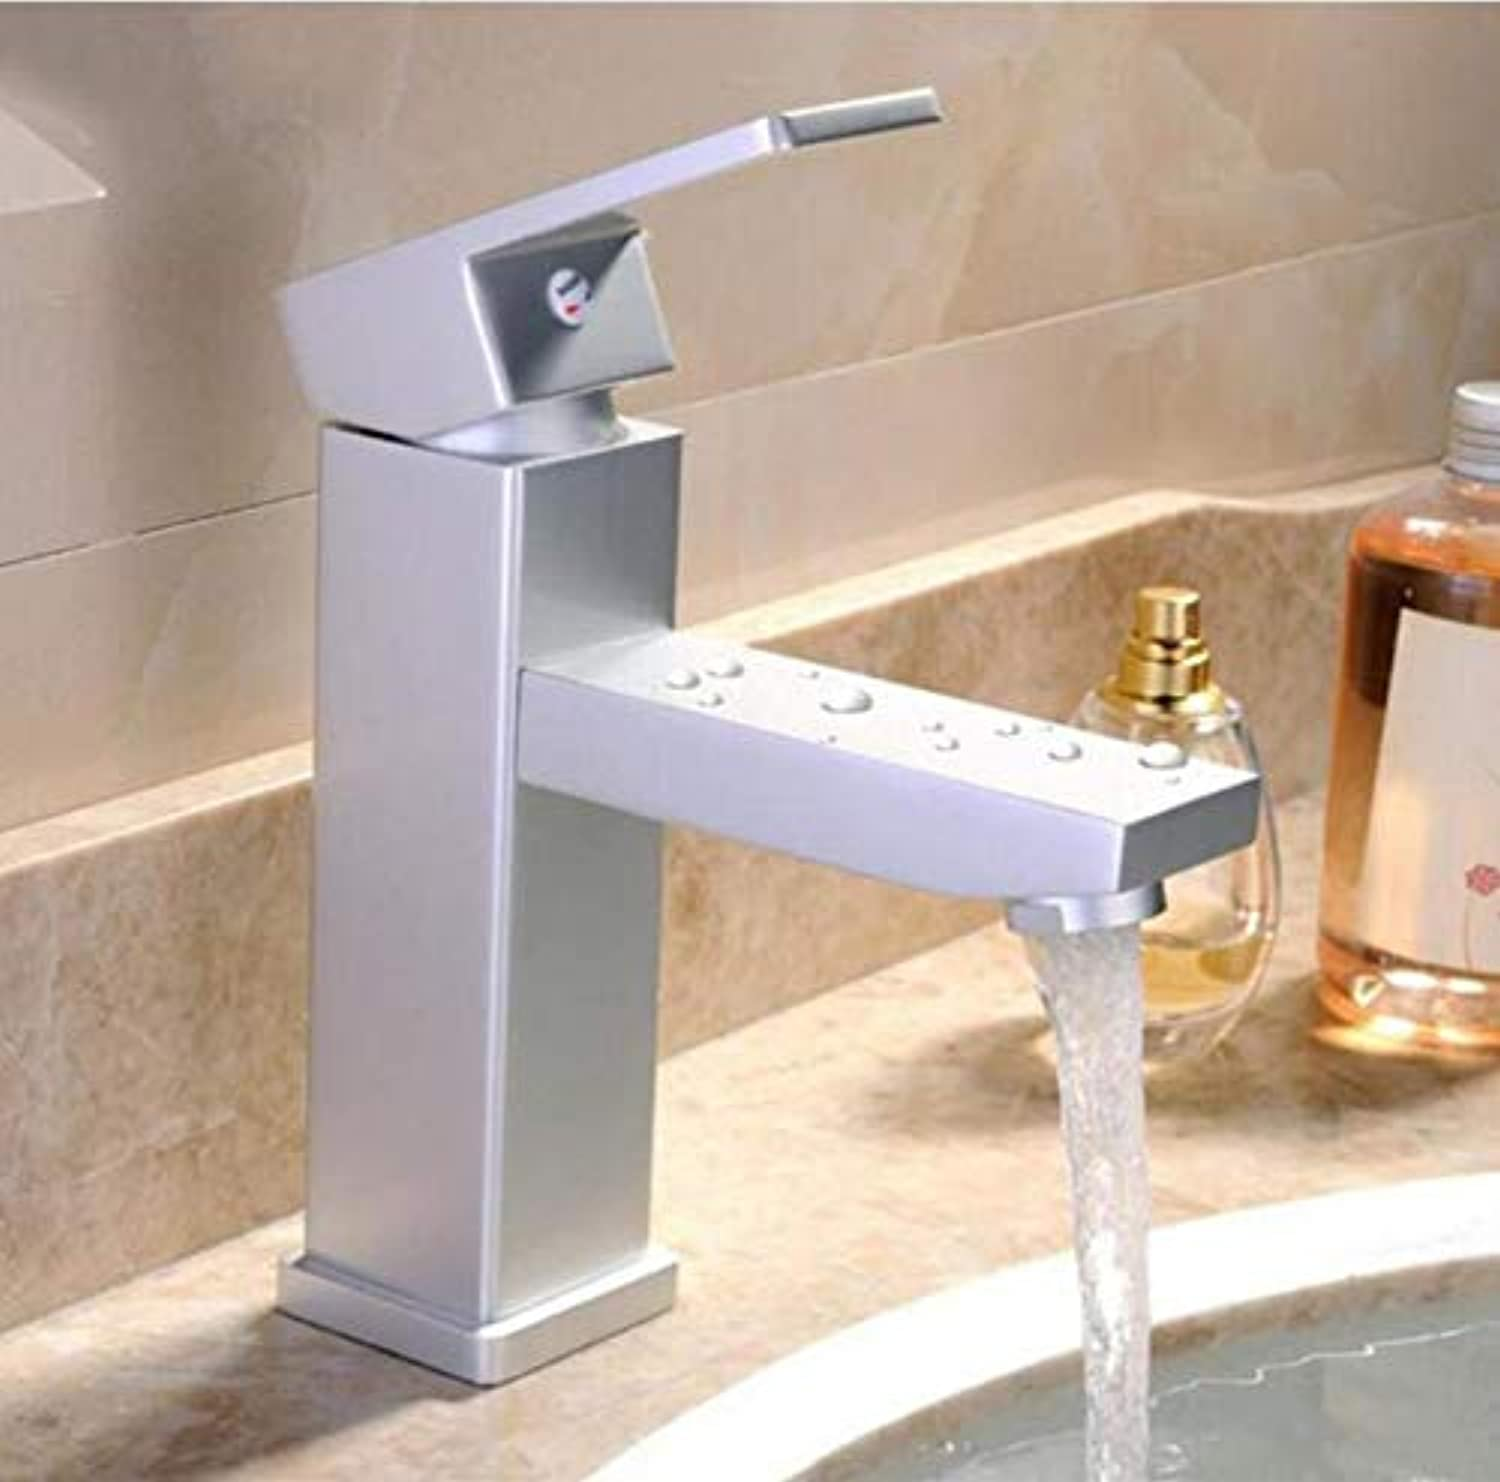 Kitchen Brass Hot and Cold Water Faucet Washbasin Mixer Single Handle Bathroom Basin Faucets Square Space Aluminum Faucet Sink Tap